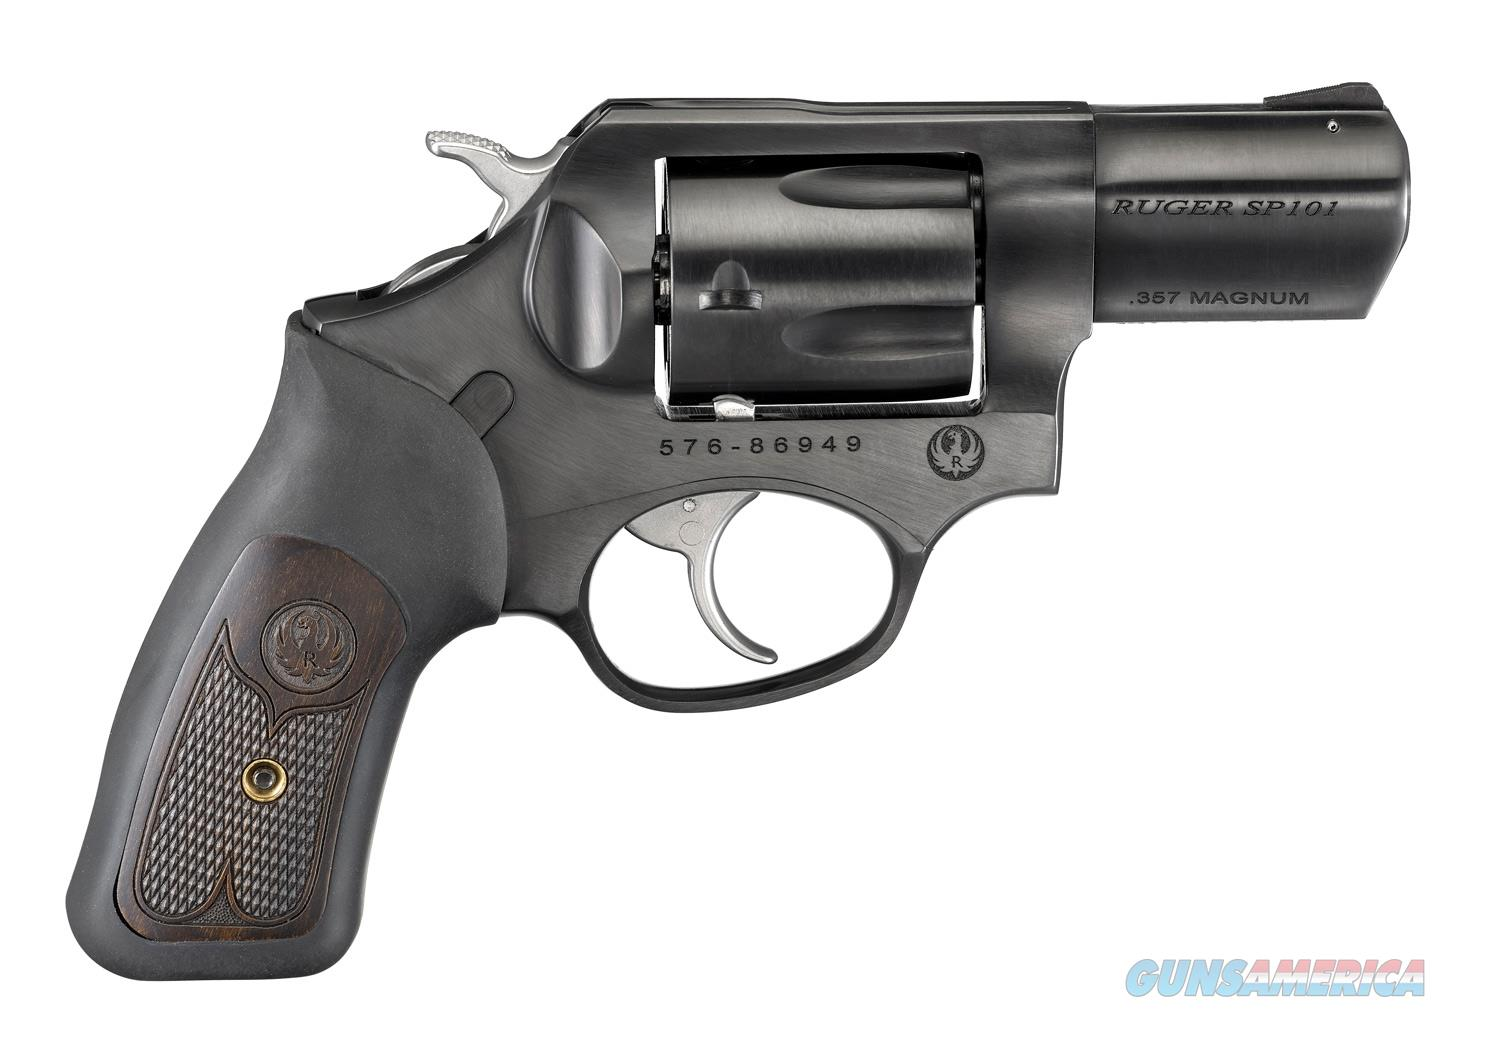 "Ruger SP101 .357 Magnum 2.25"" Blued 5 Rds 15702  Guns > Pistols > Ruger Double Action Revolver > SP101 Type"